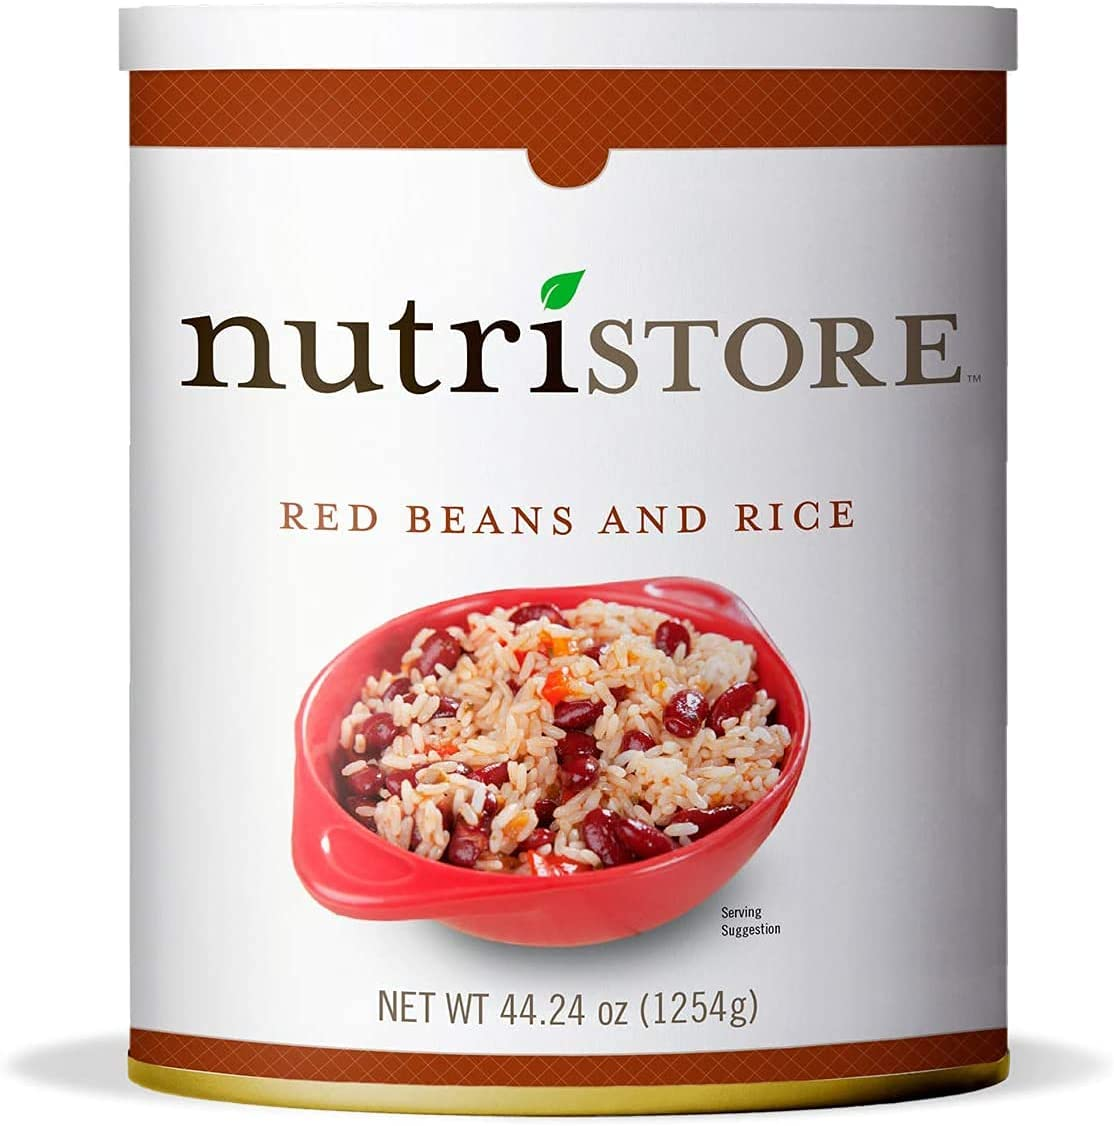 Nutristore Red Beans and Rice #10 Can | Premium Variety Ready to Eat Meals | Bulk Emergency Food Supply | Breakfast, Lunch, Dinner | MRE | Long Term Survival Storage | 25 Year Shelf Life